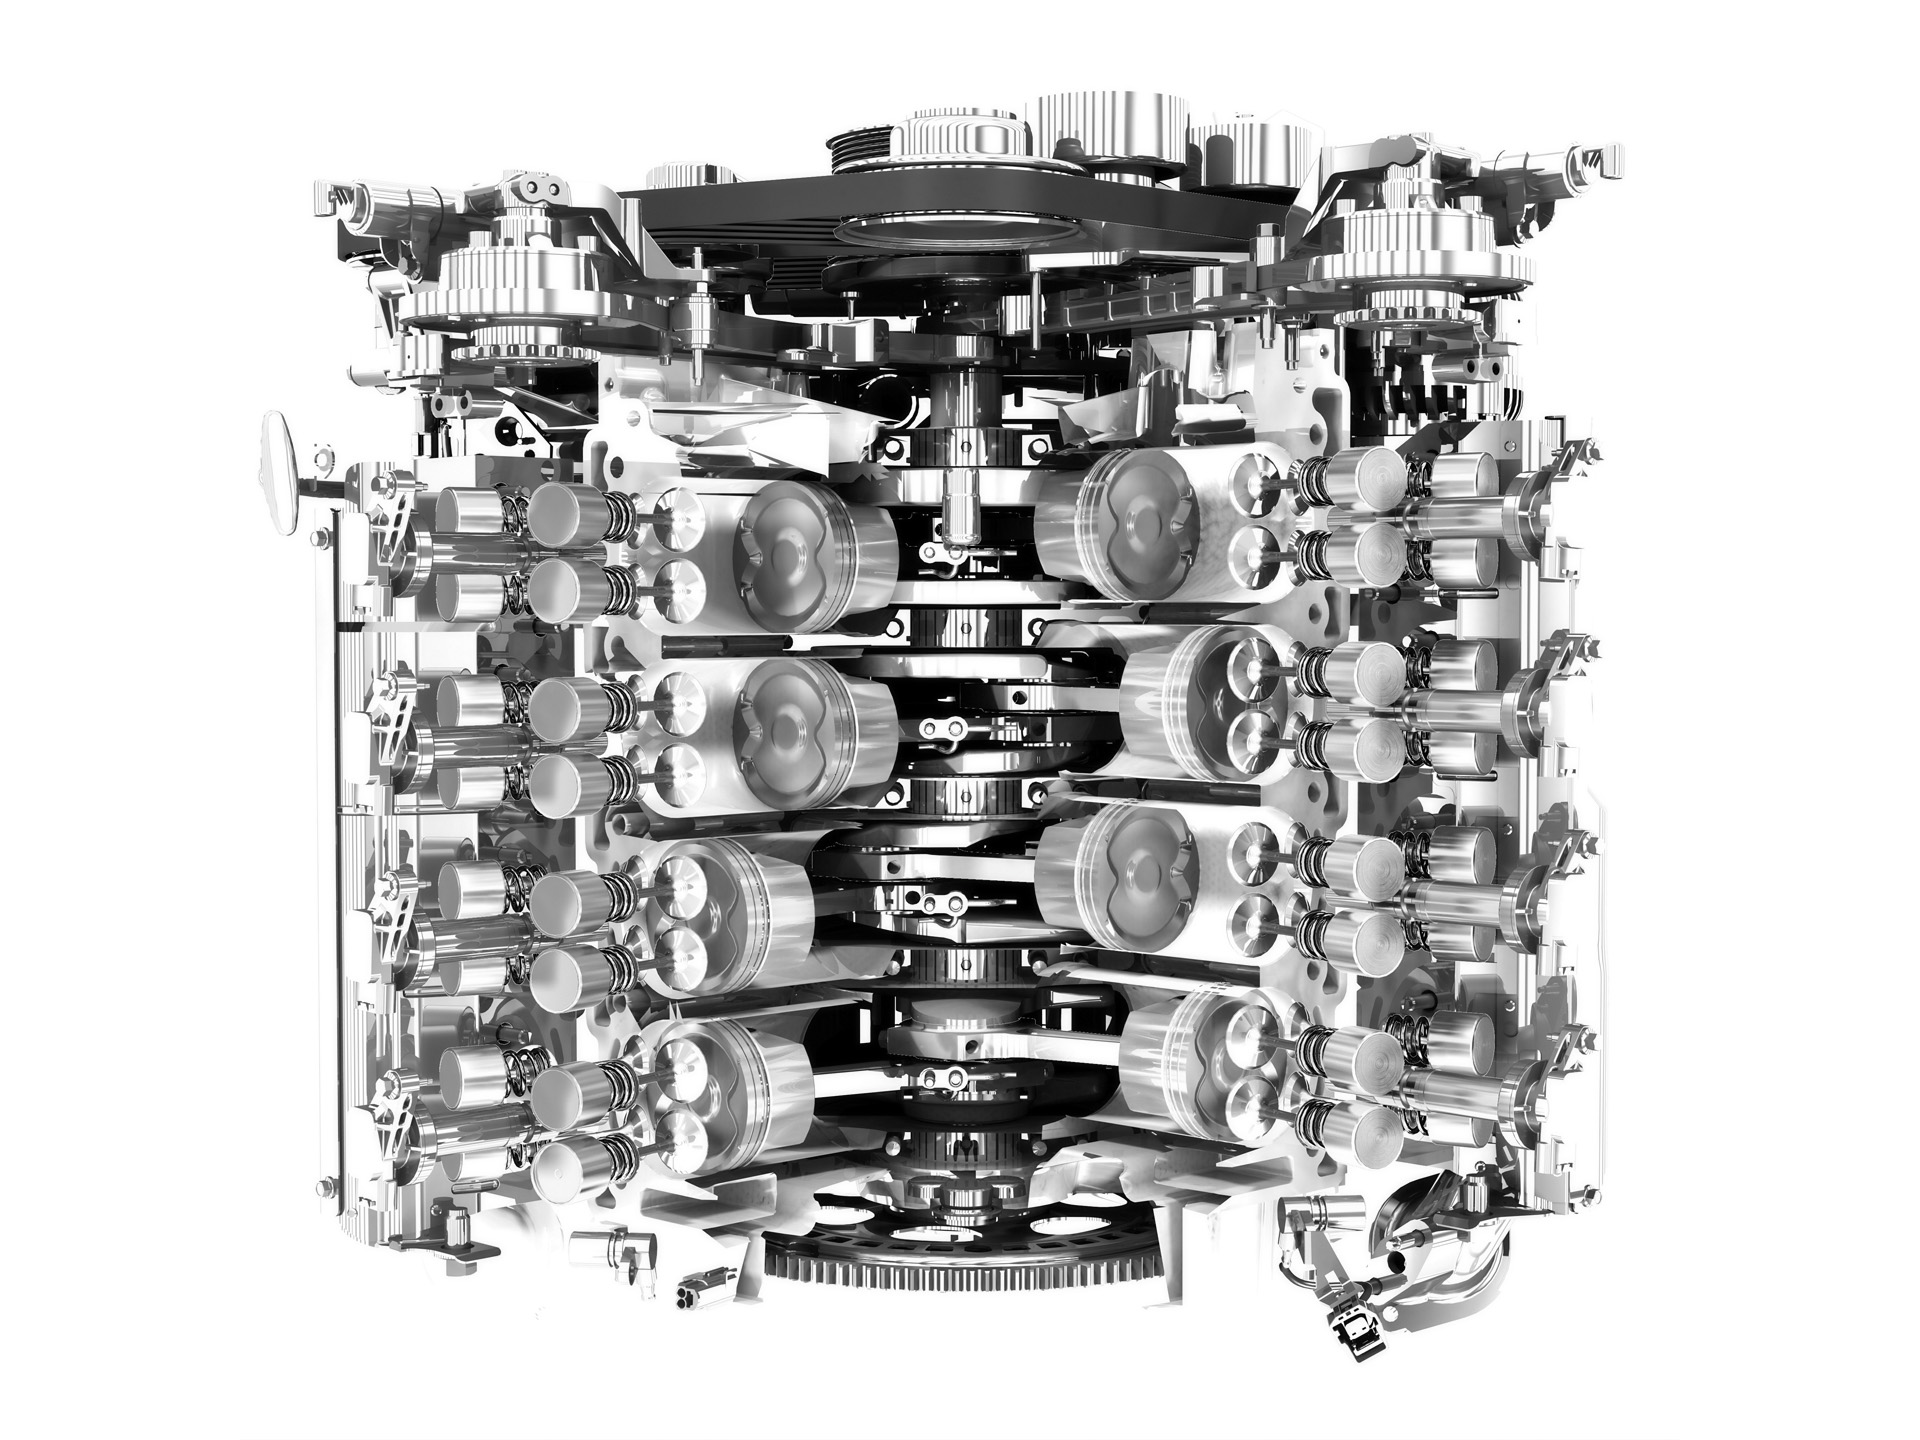 Sample P0453 Engine